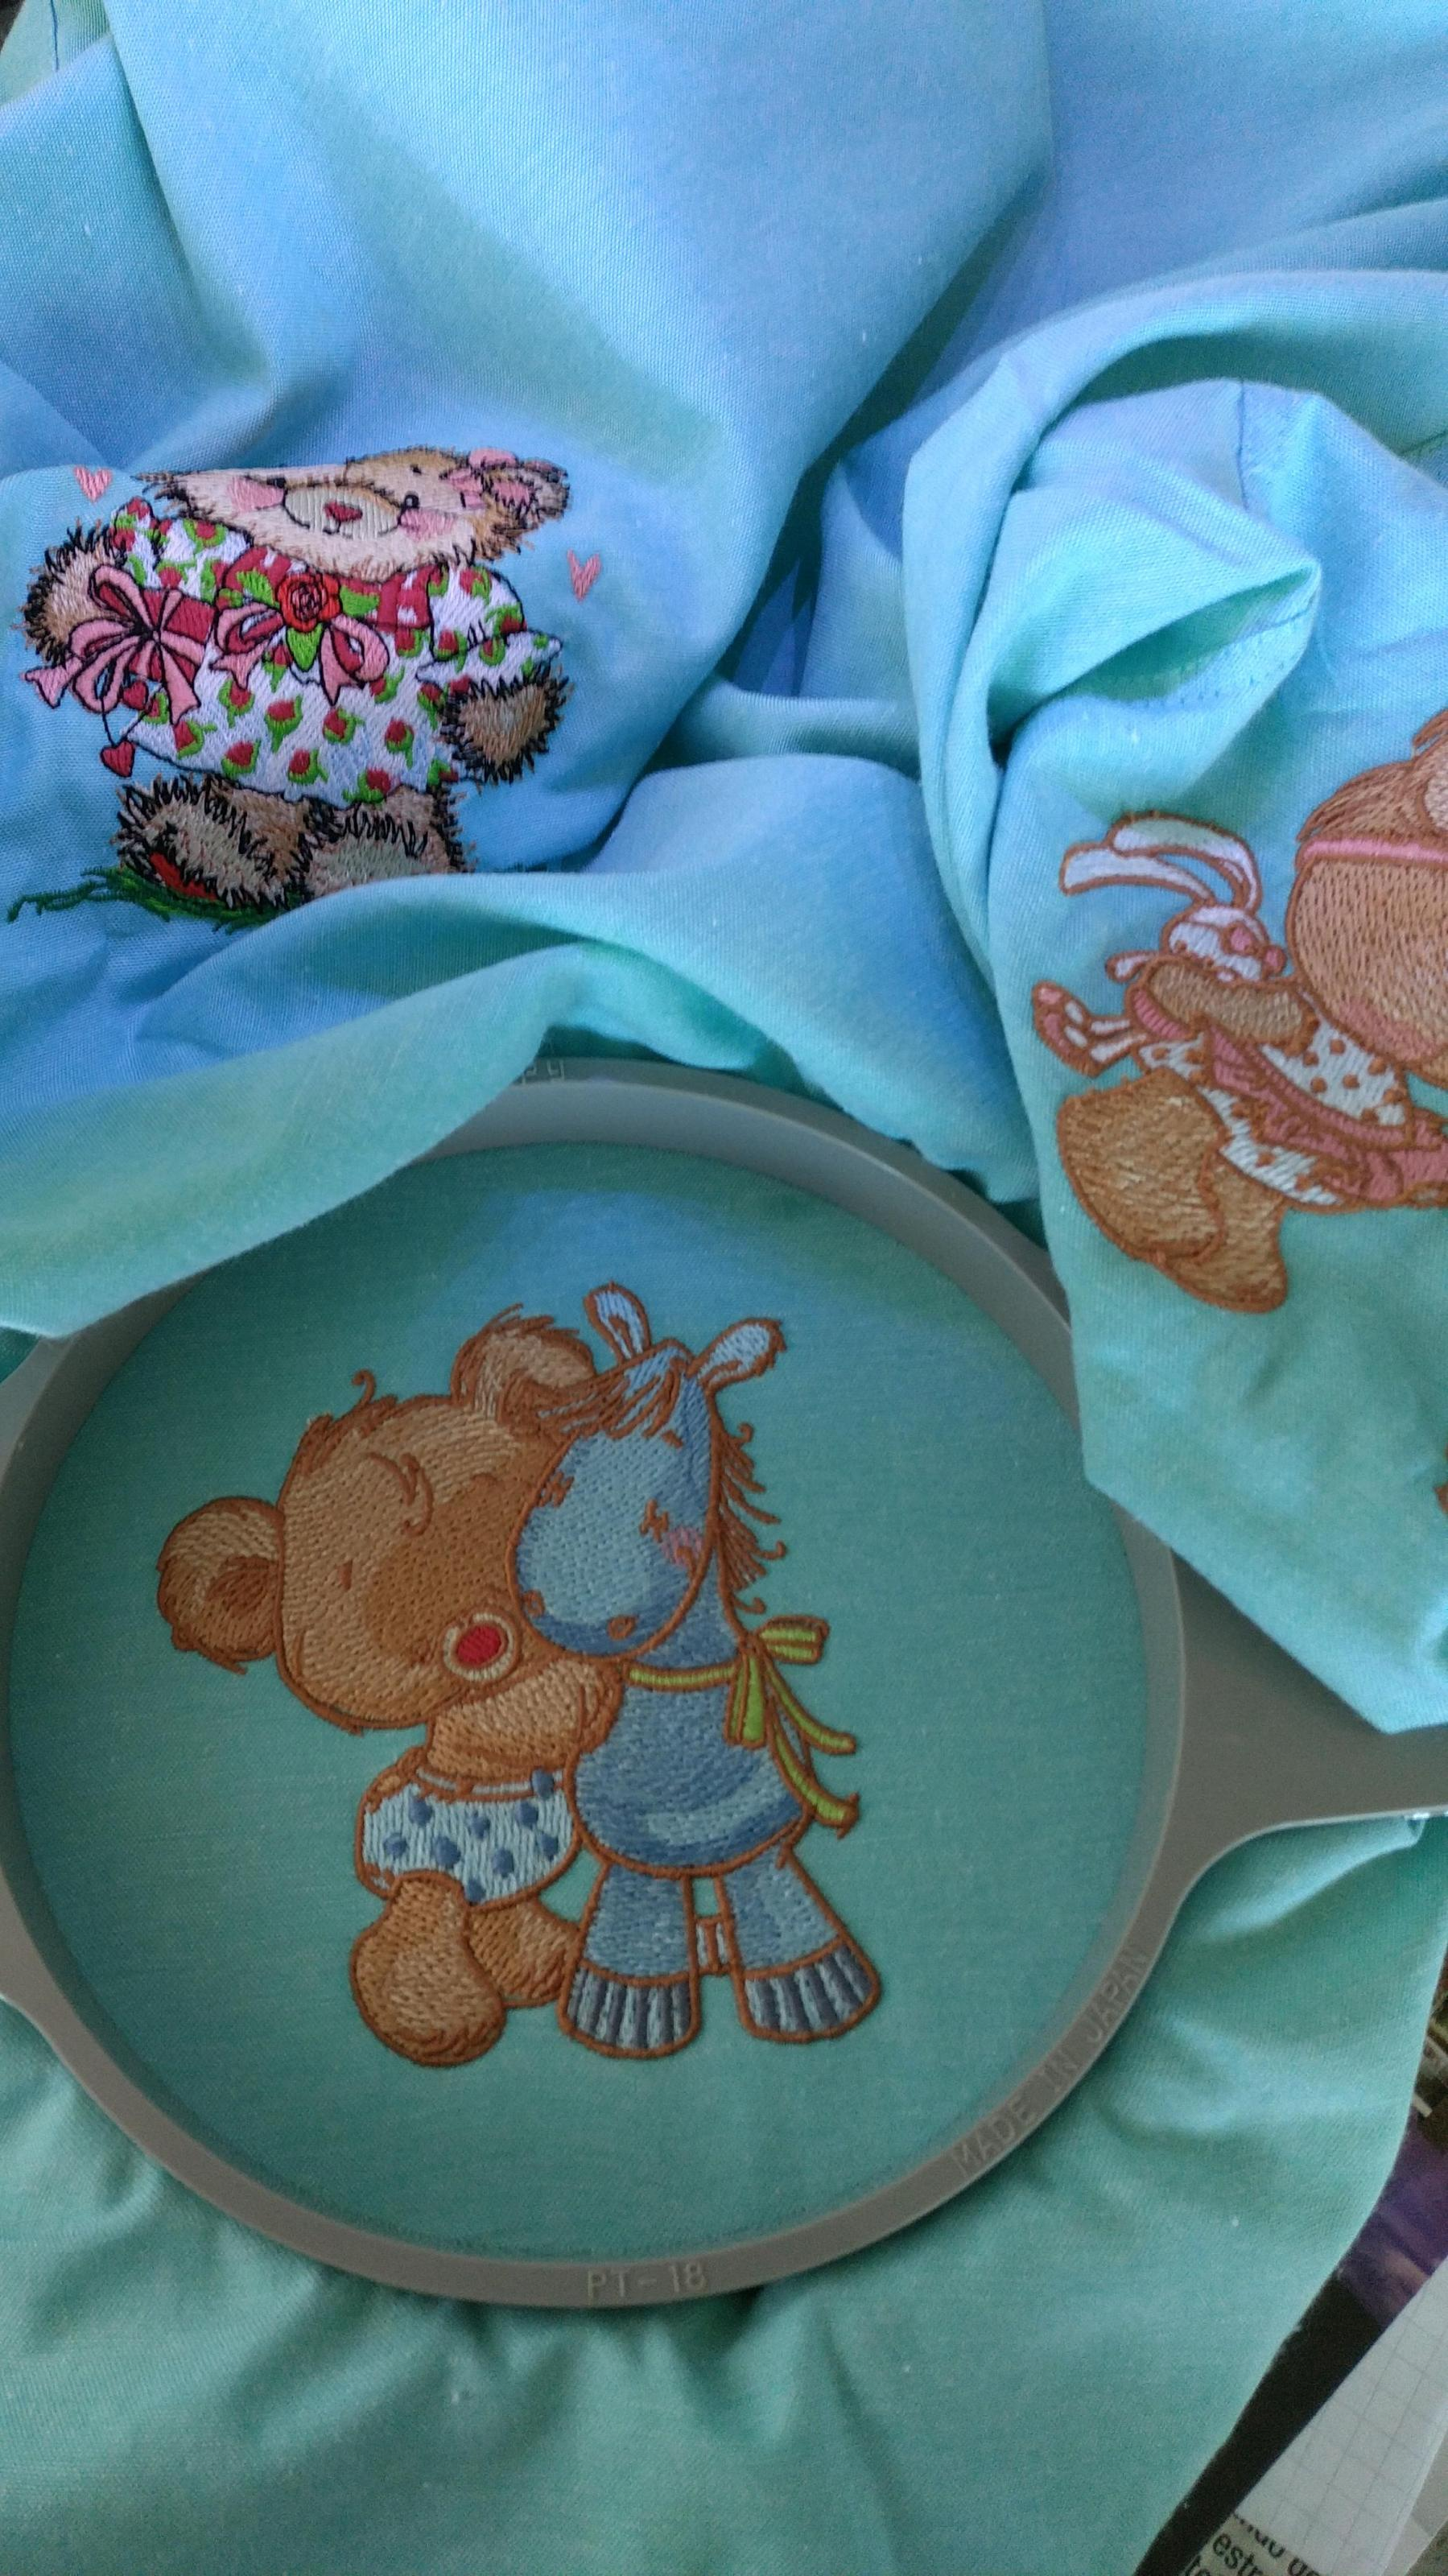 More Teddy Bear embroidery designs